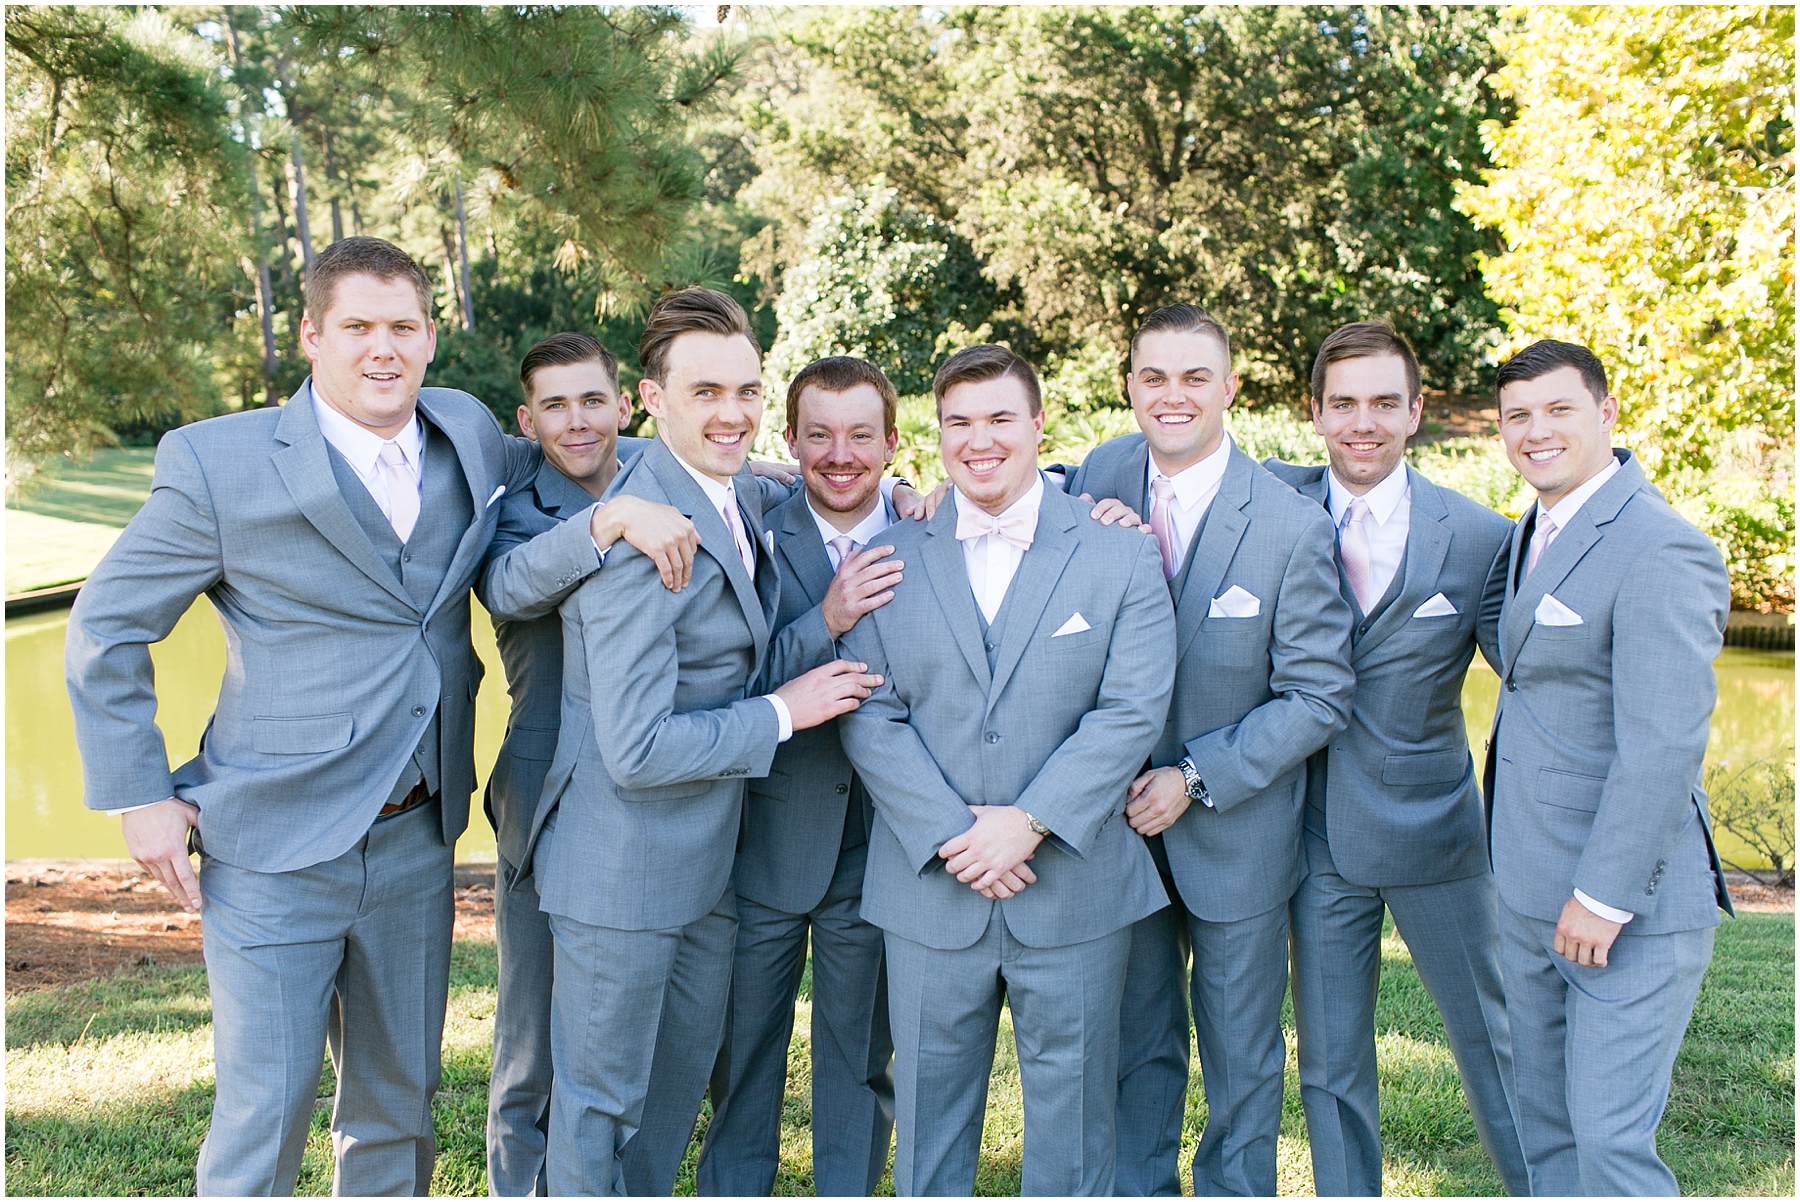 groomsmen portraits at norfolk botanical gardens wedding day, jessica ryan photography